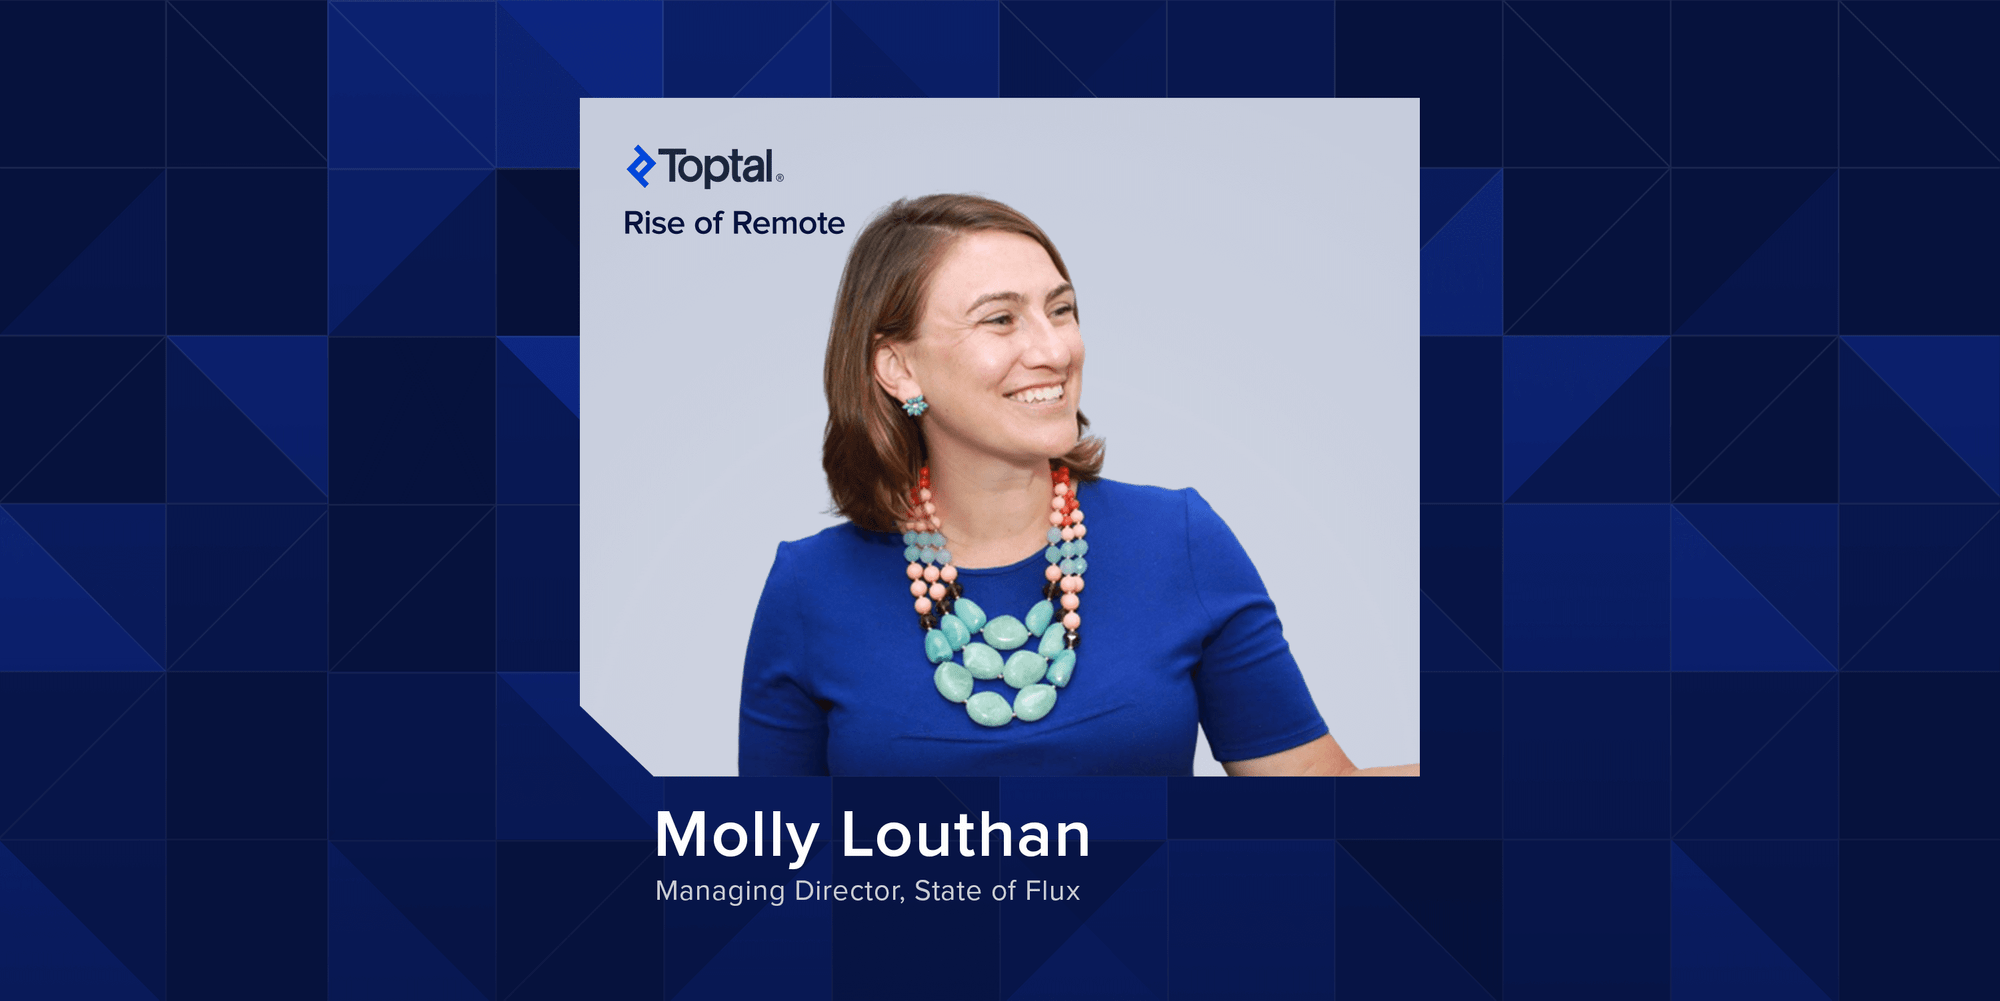 Trust and Security in Global Supply Chains, with Molly Louthan